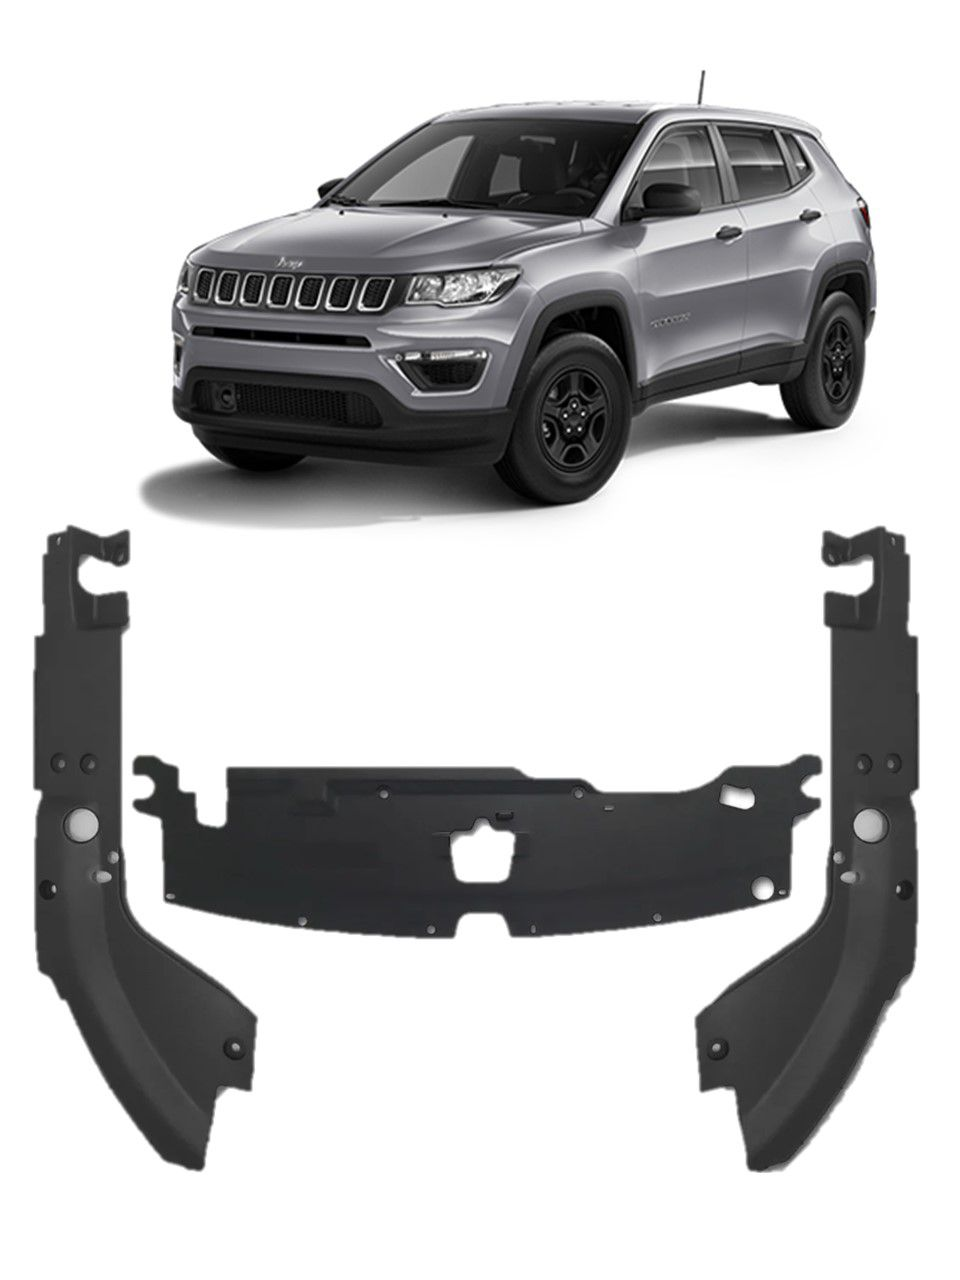 Kit Moldura Acabamento Motor Jeep Compass 19 2020 Original